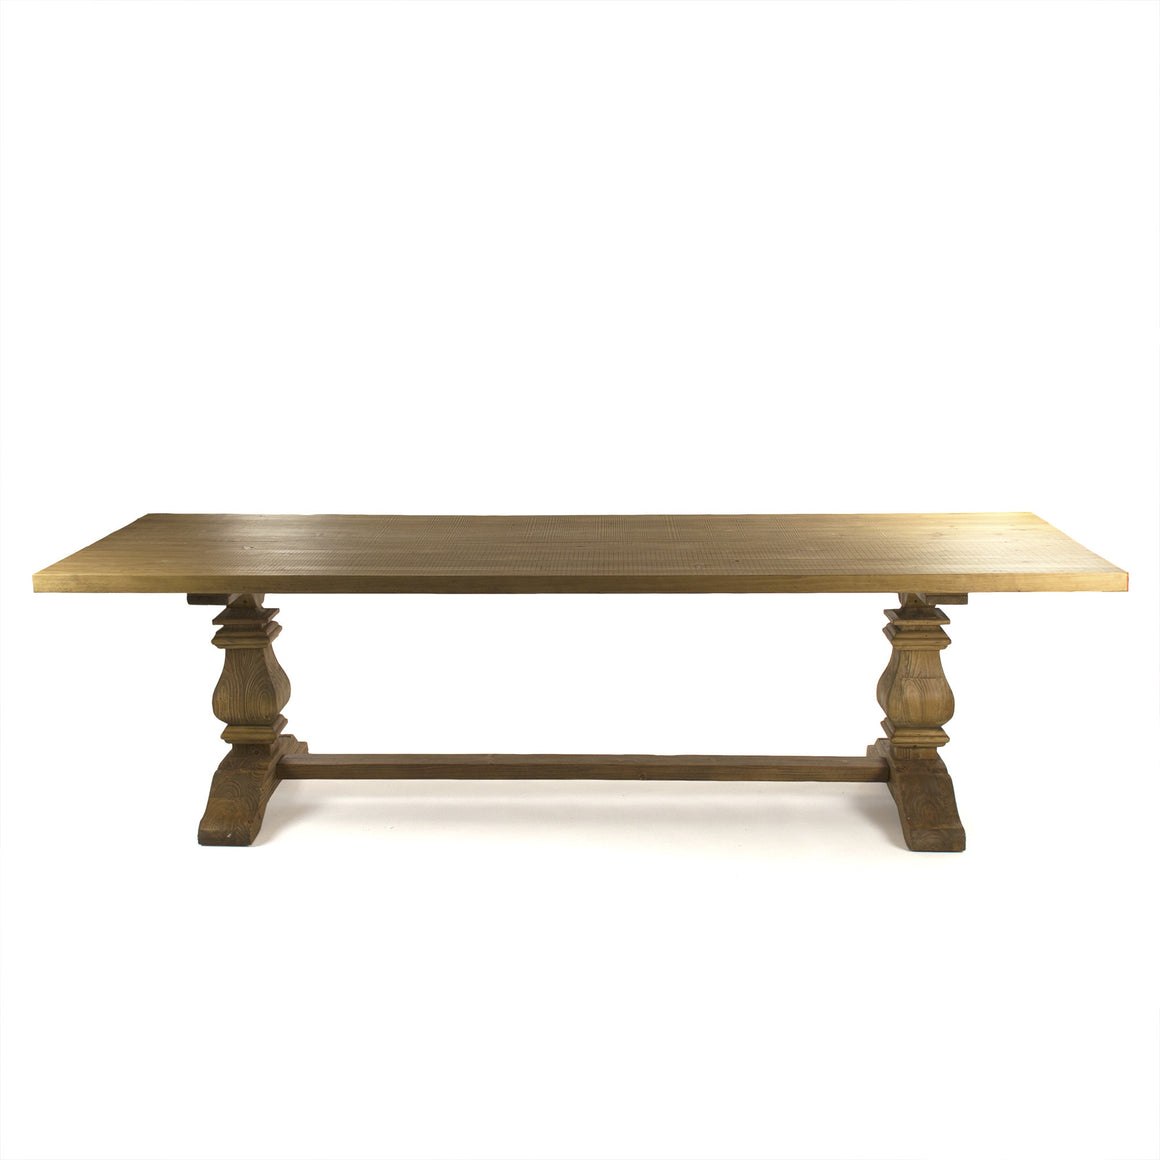 Dining Table - Avery Dining Table